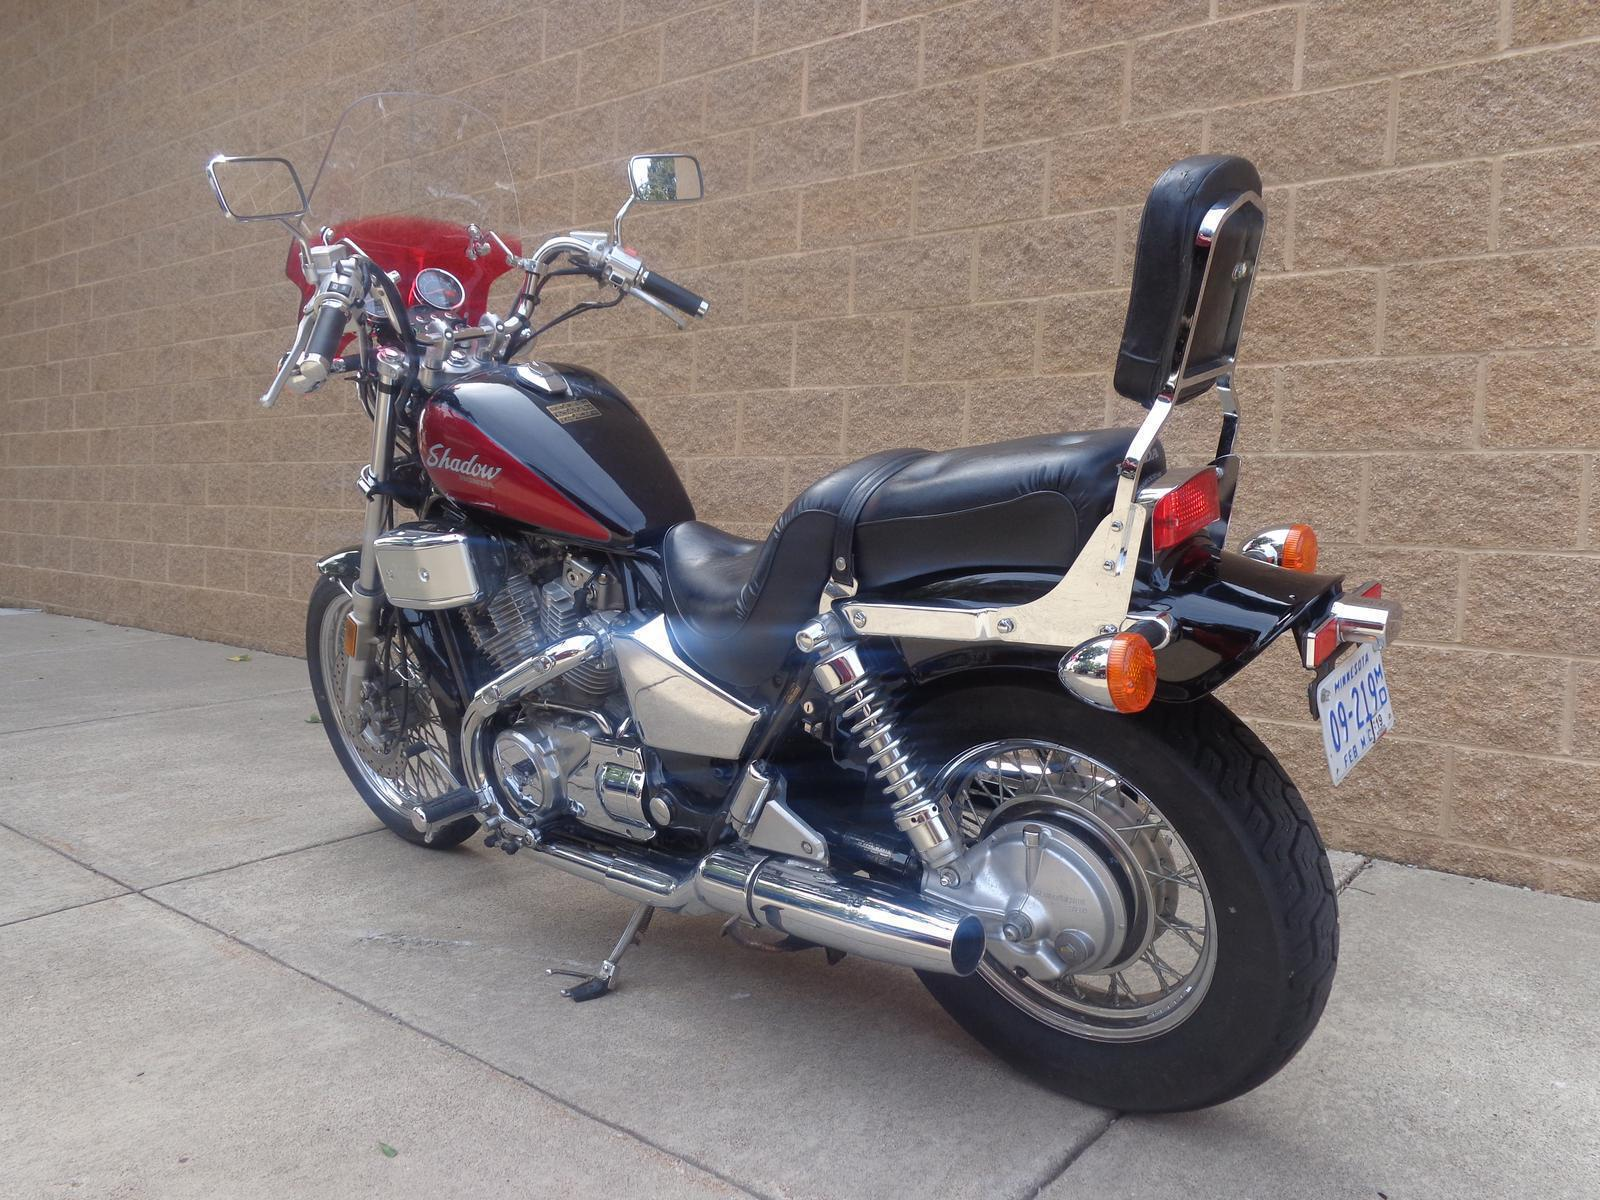 1988 Honda Shadow Vt800 For Sale In Osseo Mn Powersports Fuel Filter Dsc014701